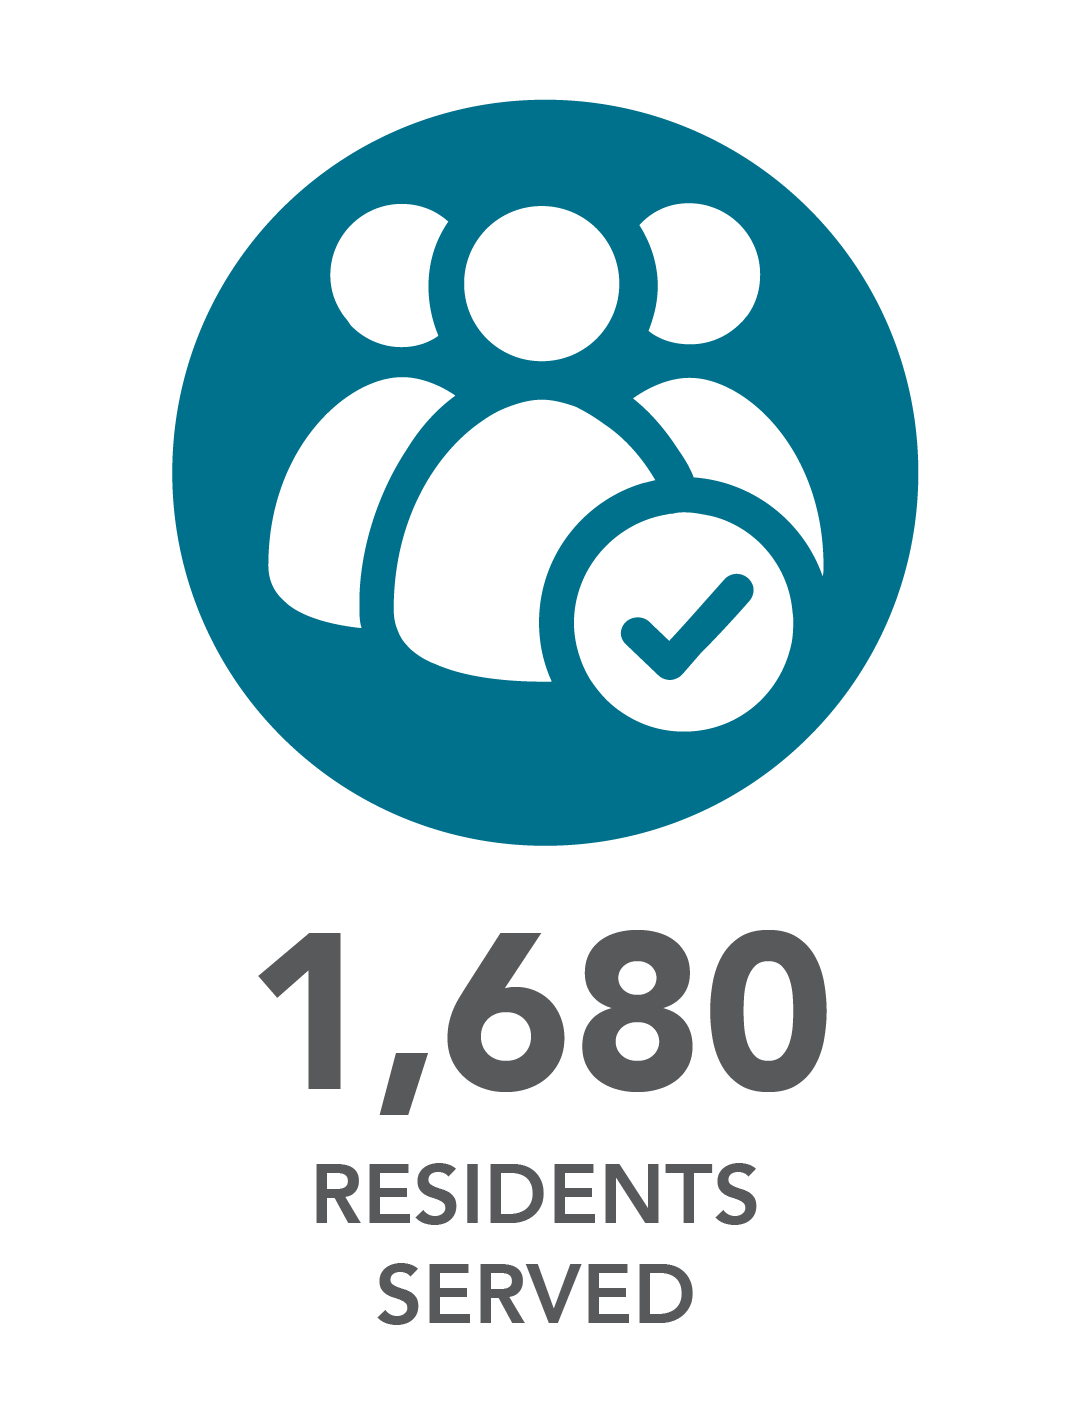 1680 residents served.